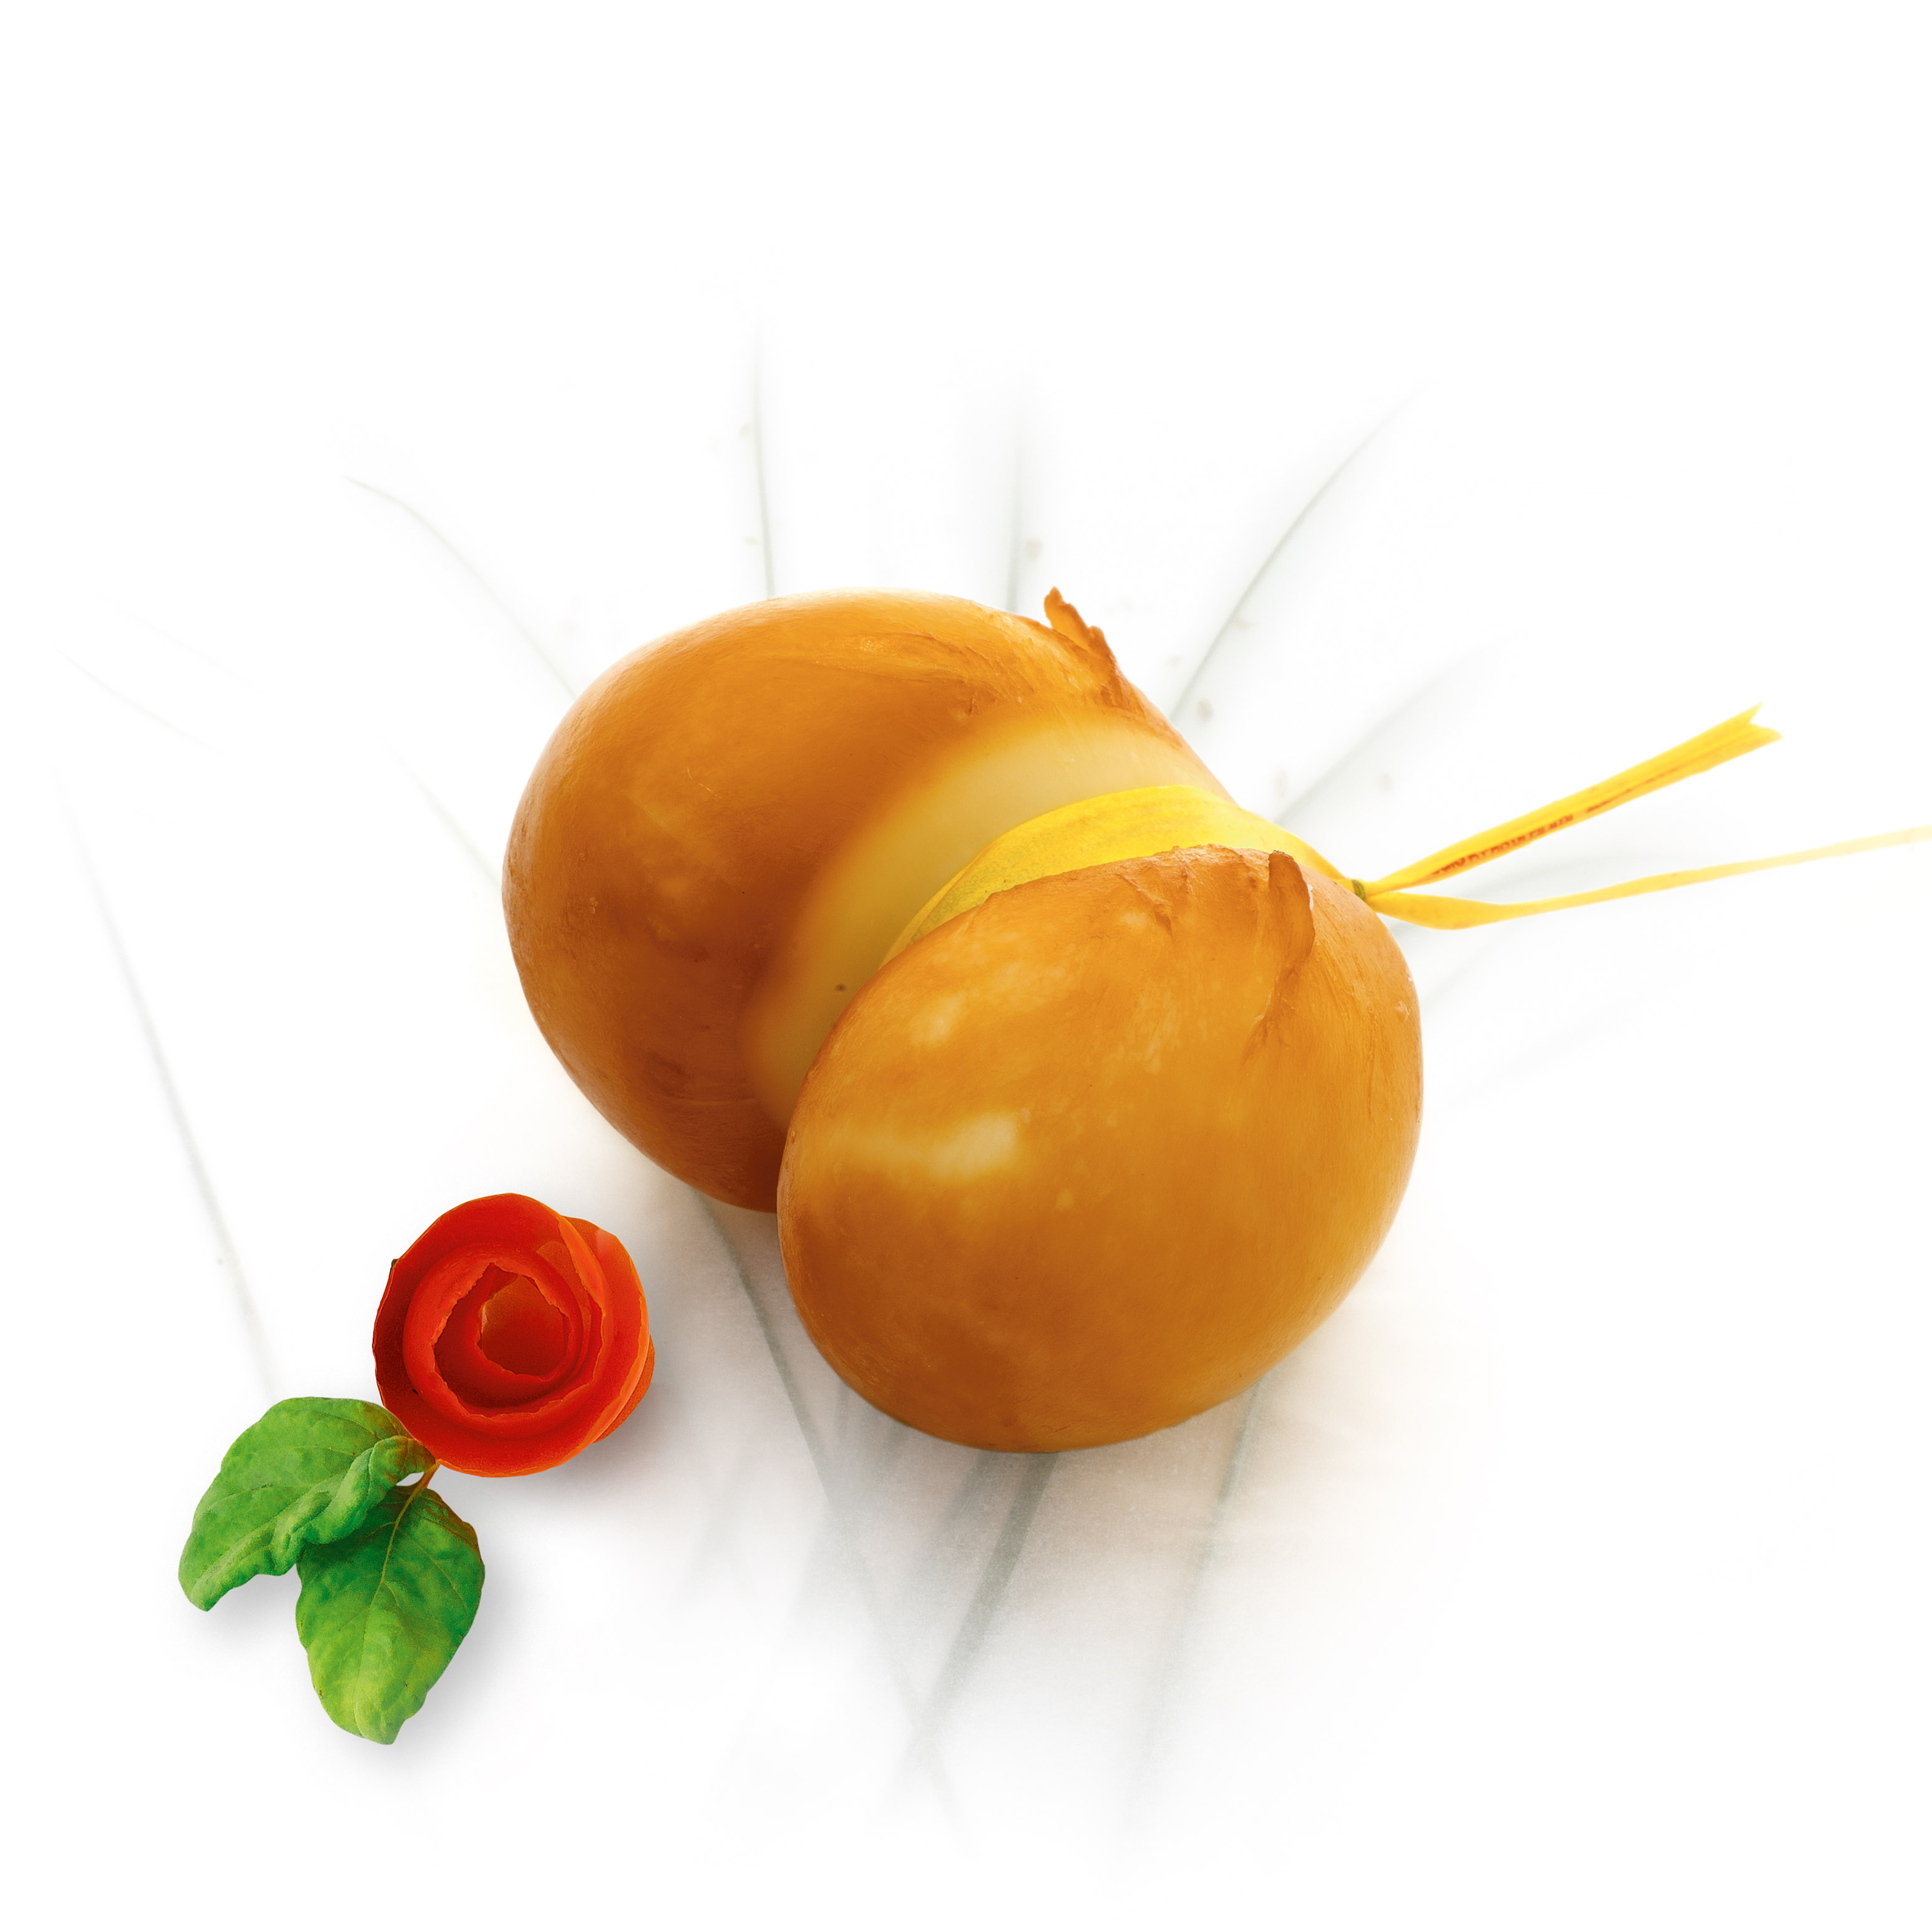 Cheese: Cow Smoked Scamorza 300gr (10.58oz)